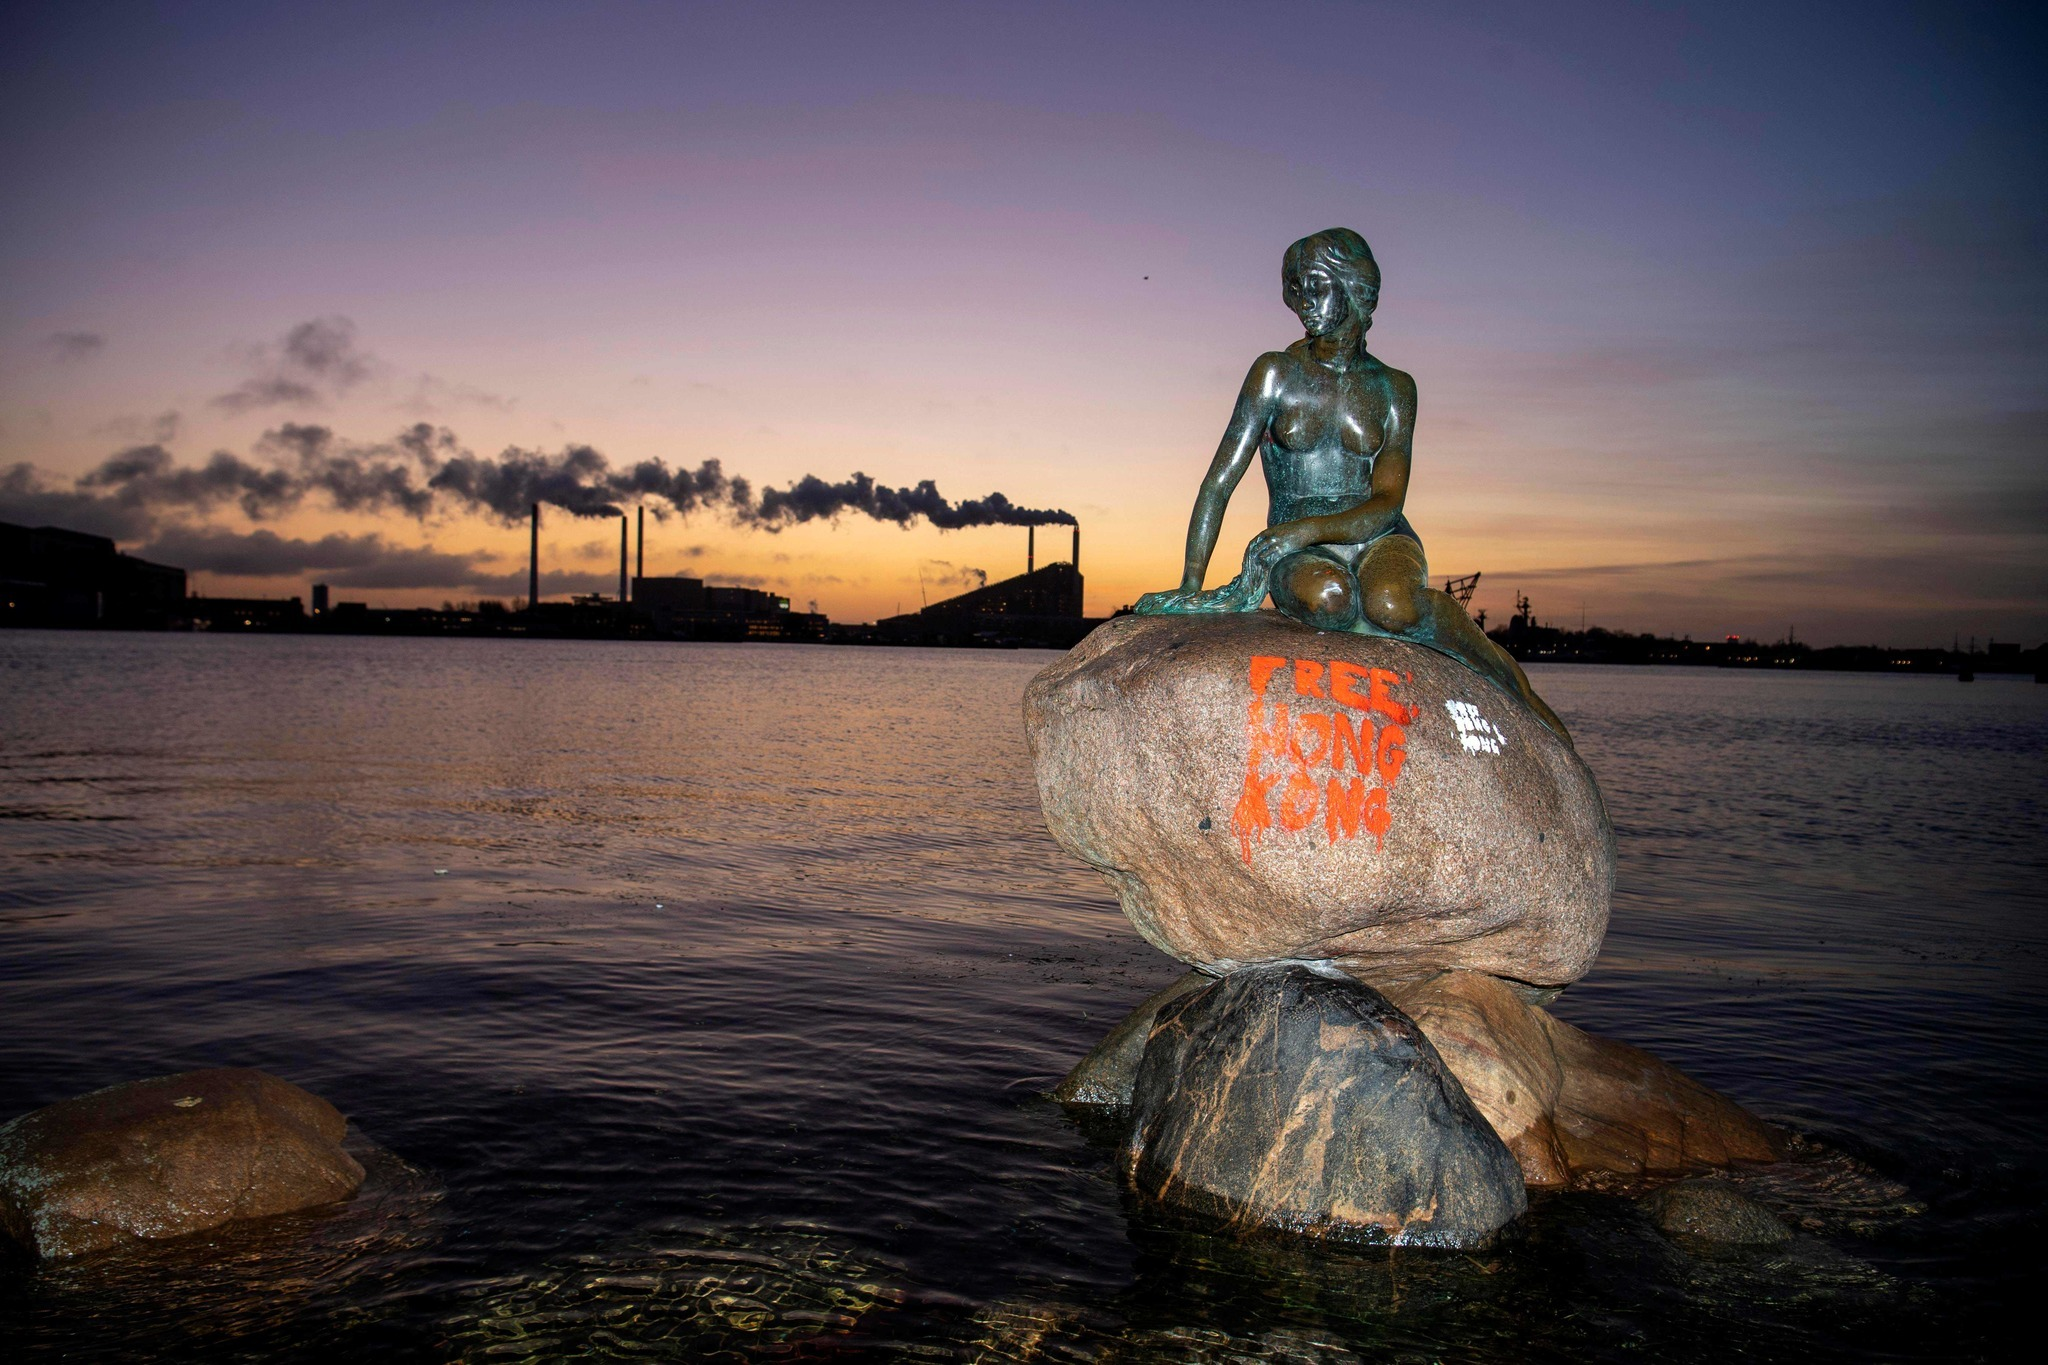 'Free Hong Kong' graffiti spray-painted onto famous Little Mermaid statue in Denmark